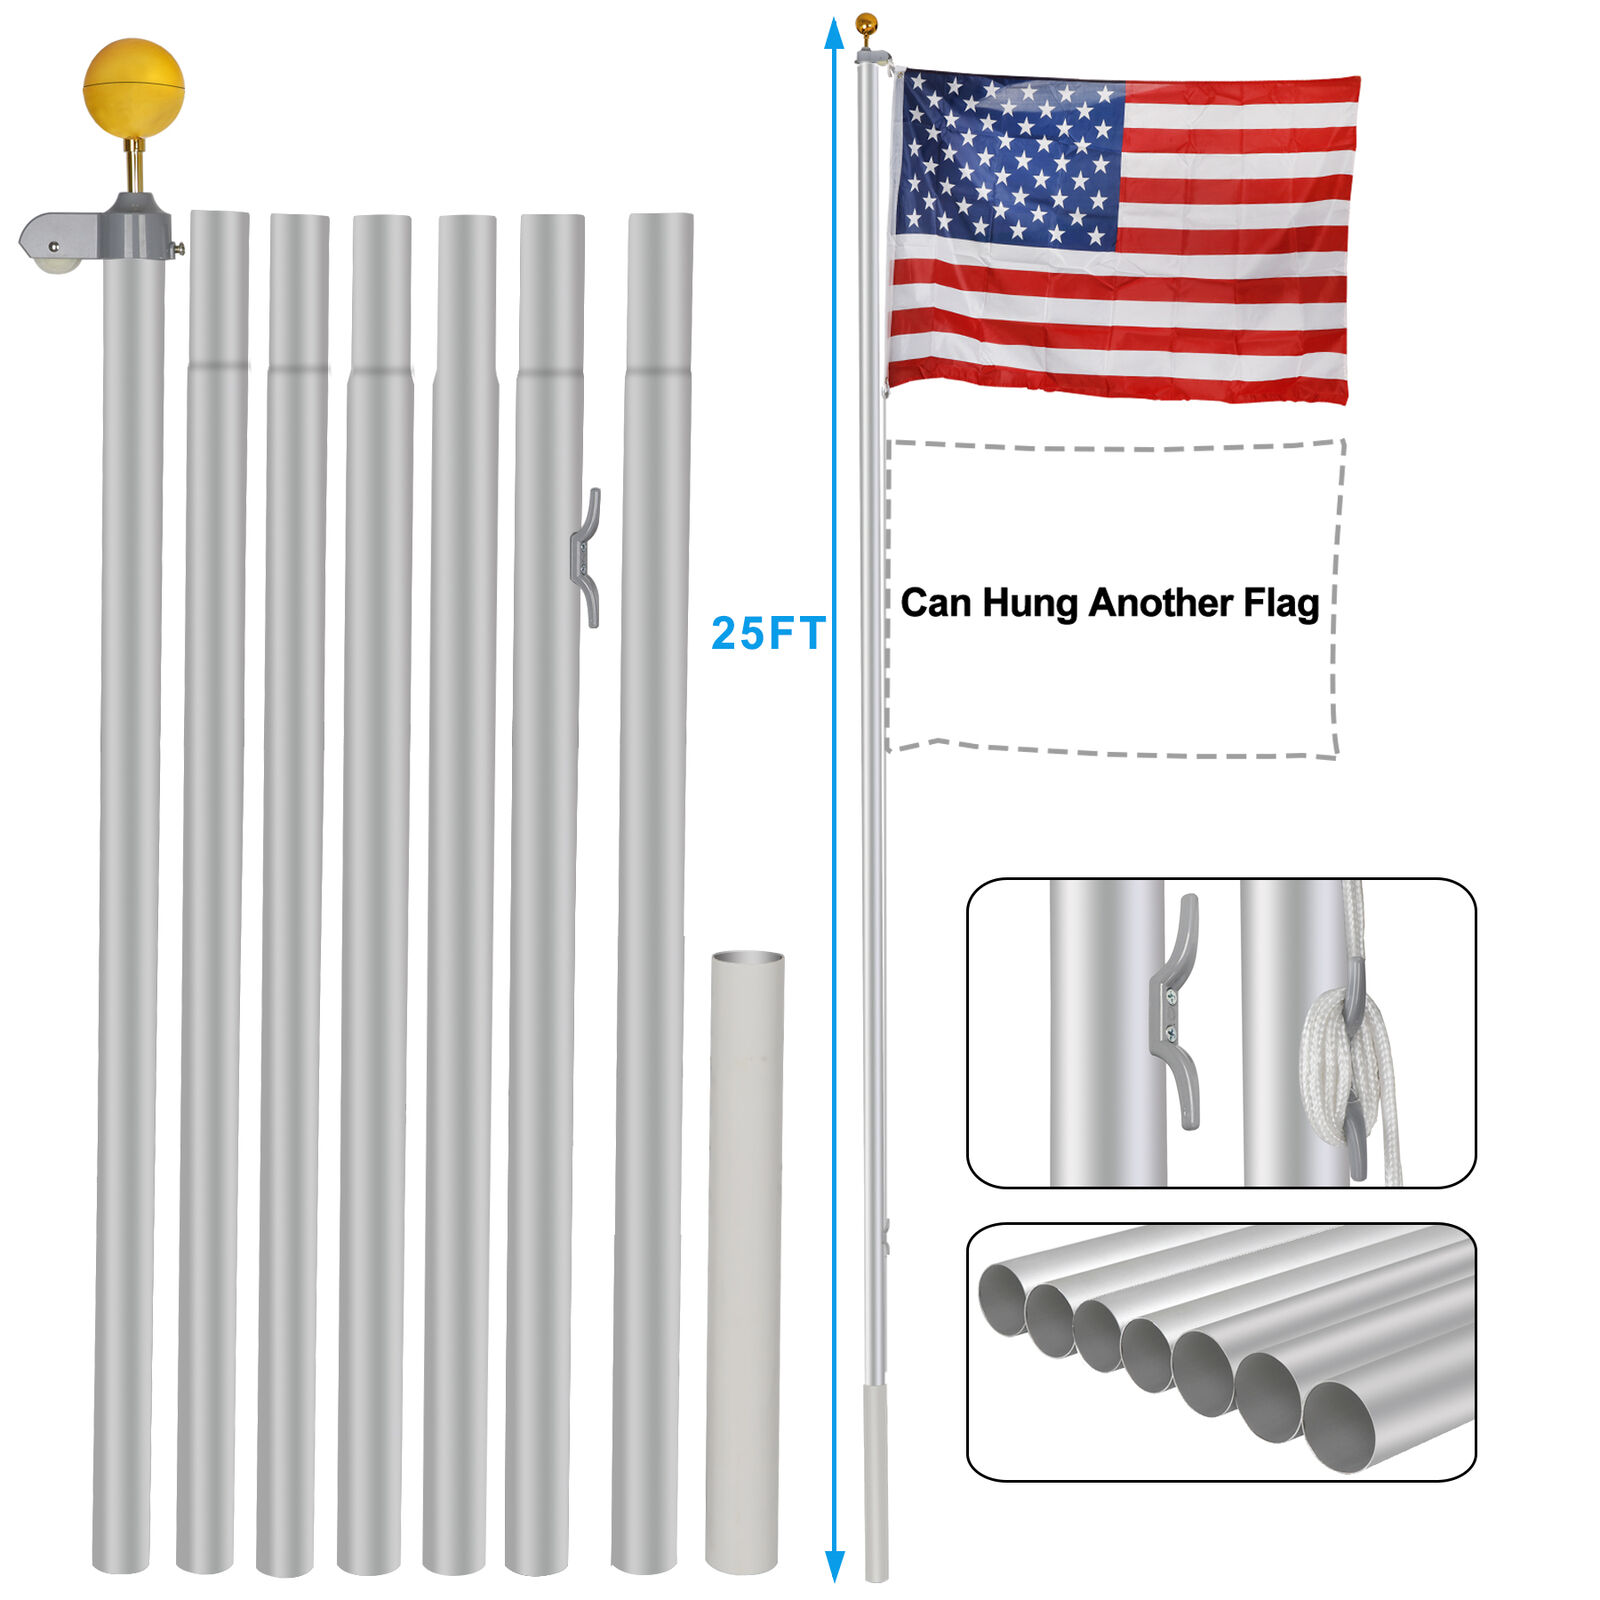 Aluminum 25Ft Sectional Flagpole Kit Outdoor Gold Ball Free US America Flag Décor